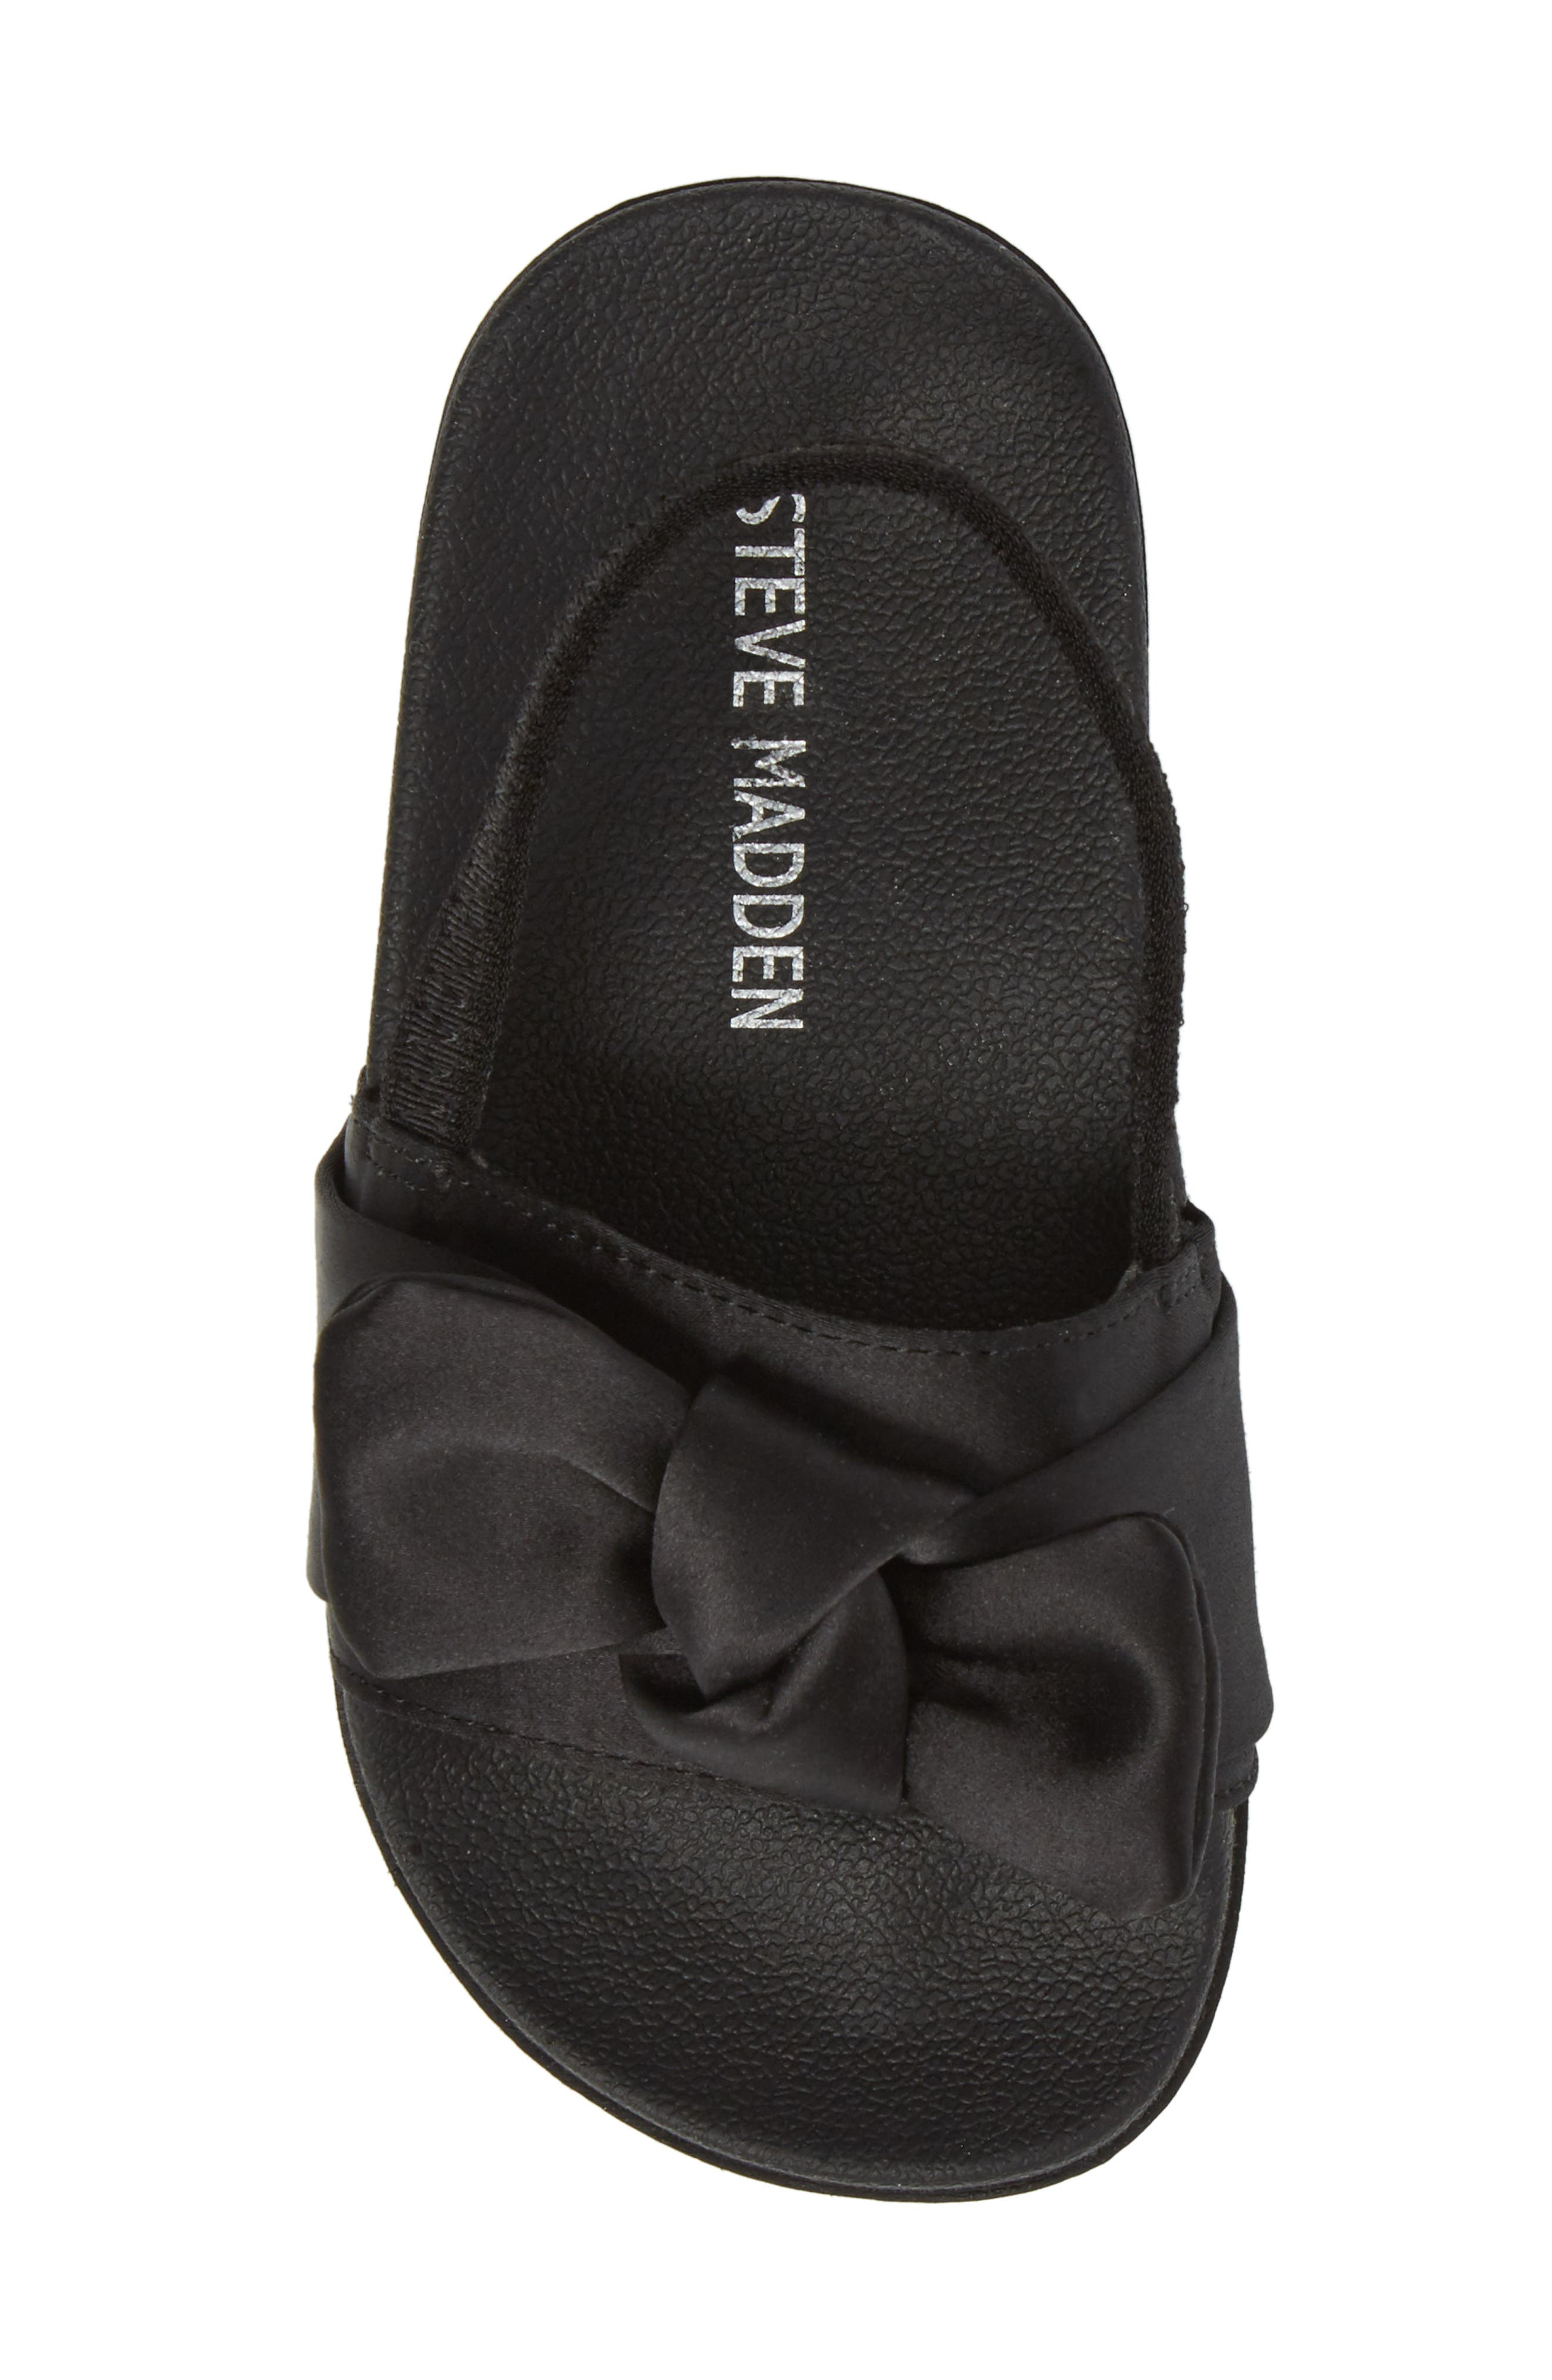 Tsilky Knotted Slide Sandal,                             Alternate thumbnail 5, color,                             007